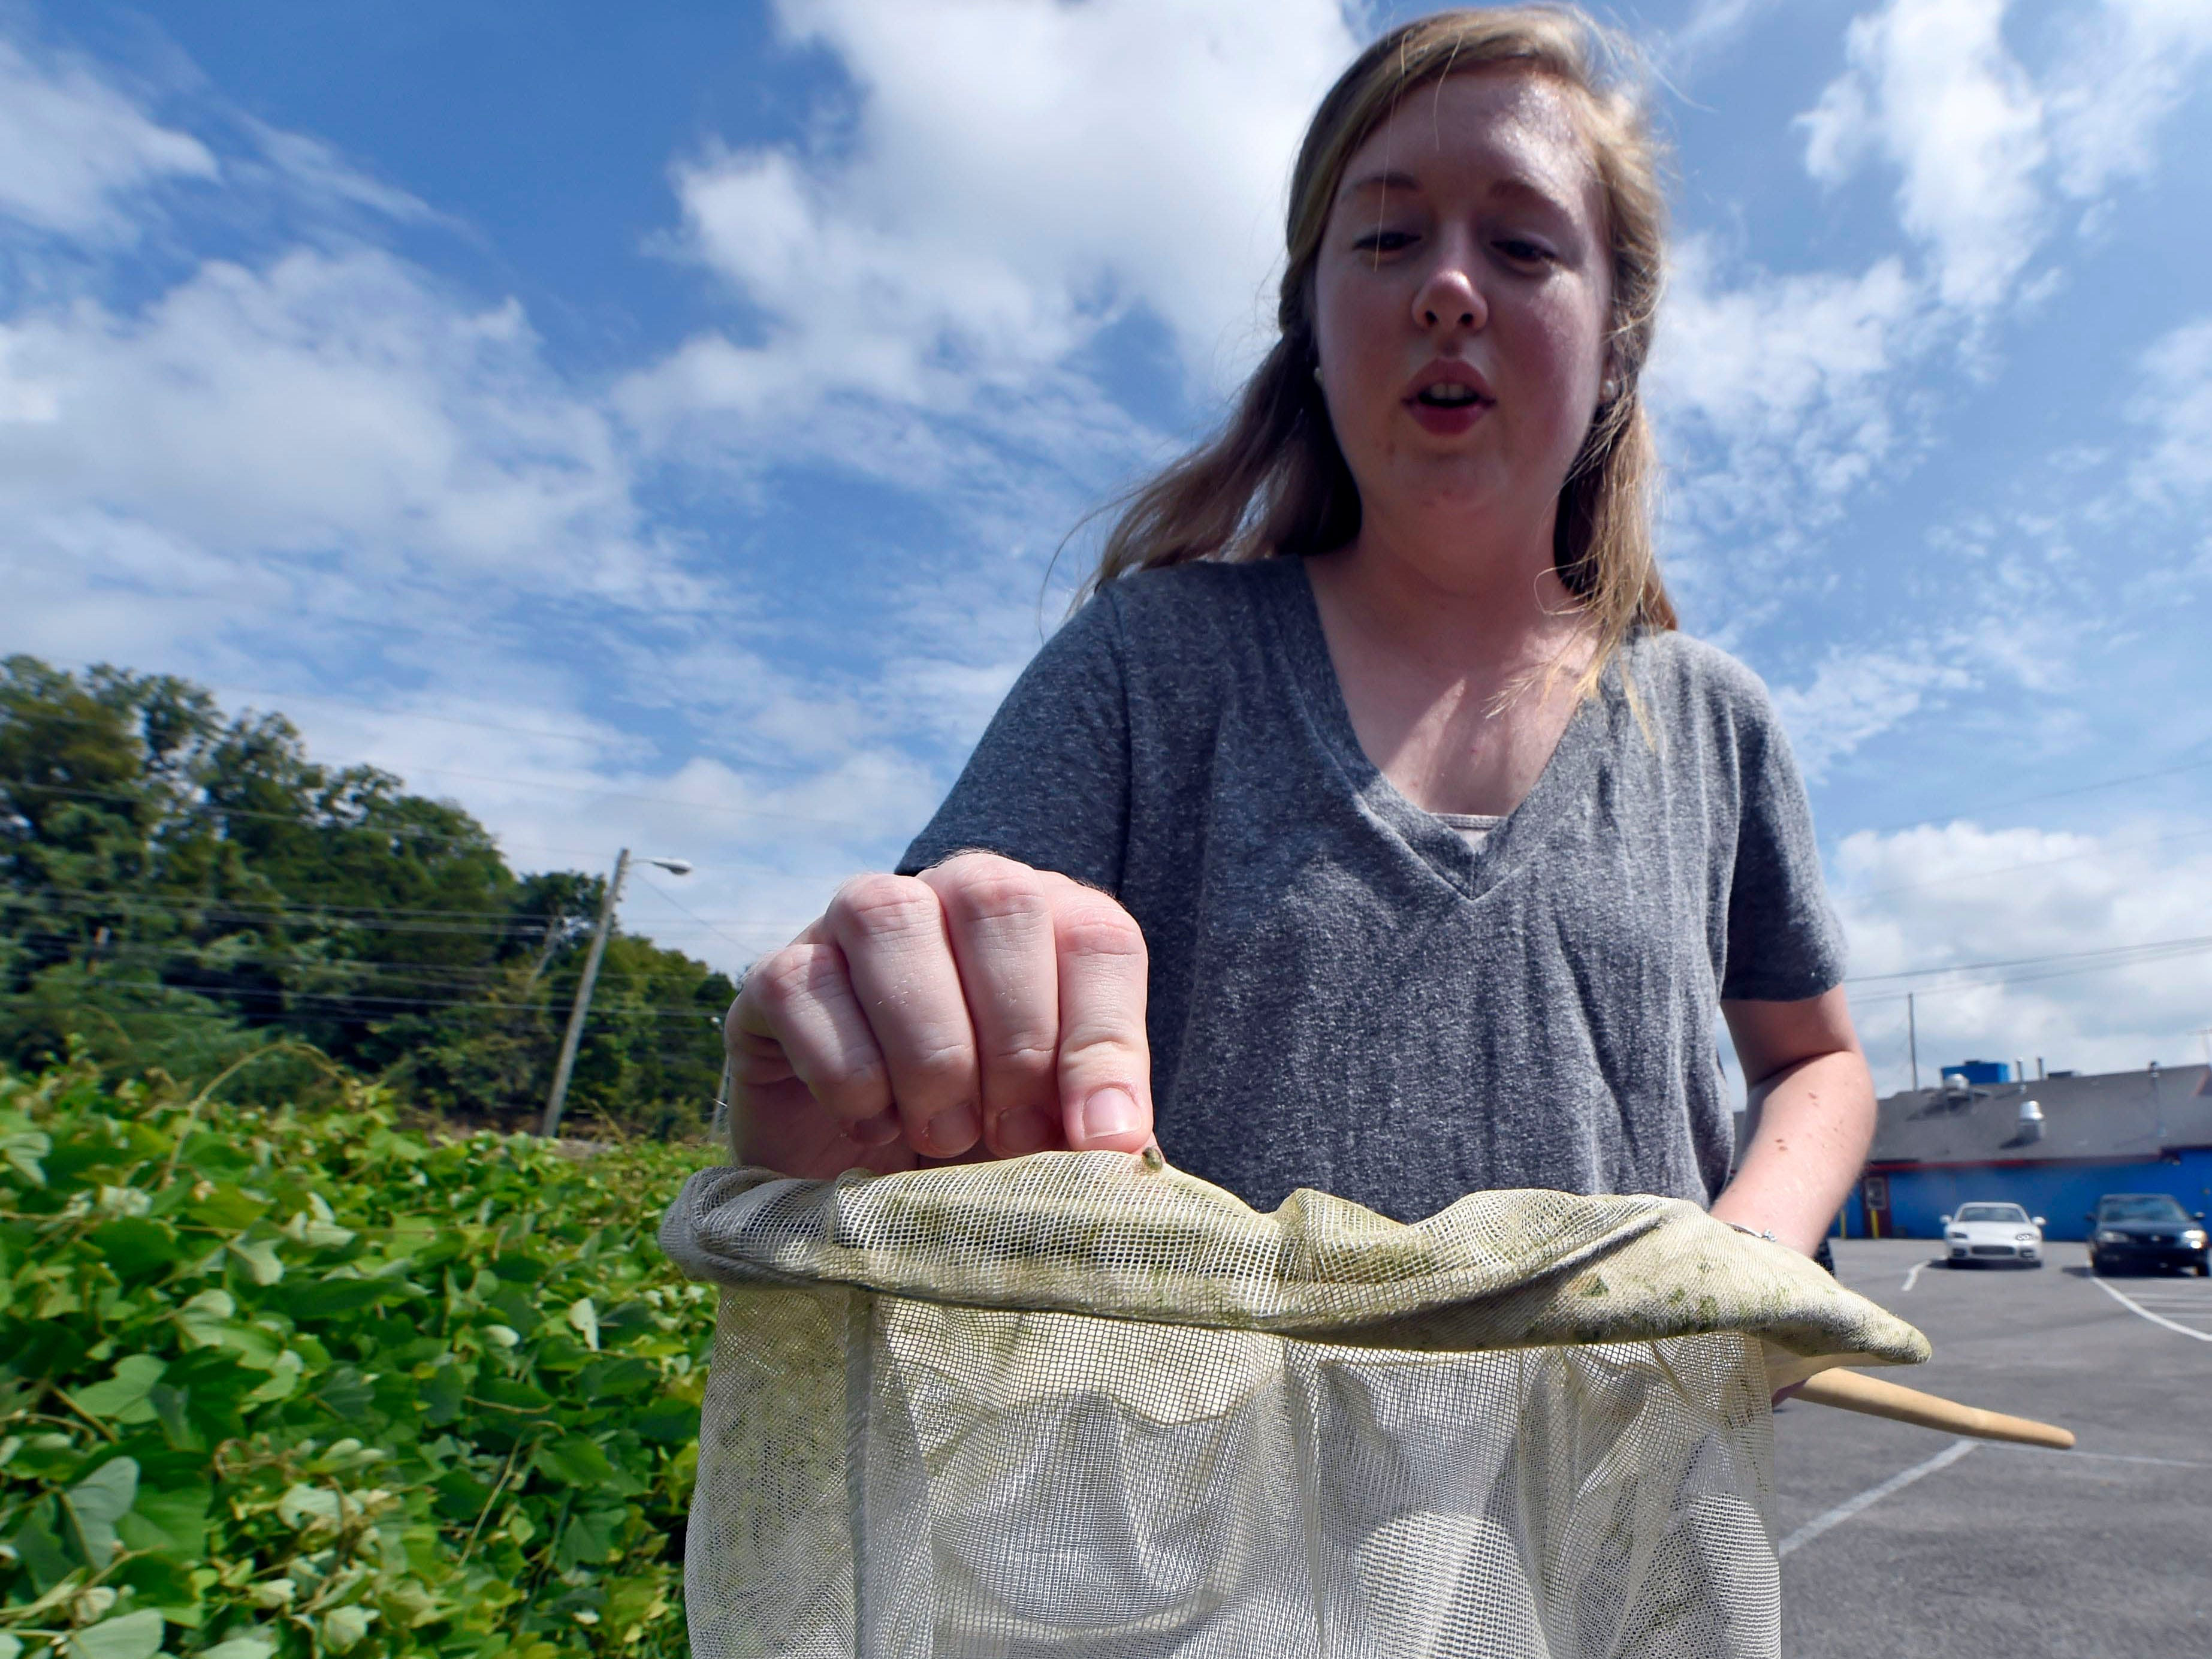 Kadie Britt, a UT graduate student, displays a kudzu bug after netting it in a field of overgrown kudzu on Chapman Highway in Knoxville on Thursday, Sept. 11, 2014.